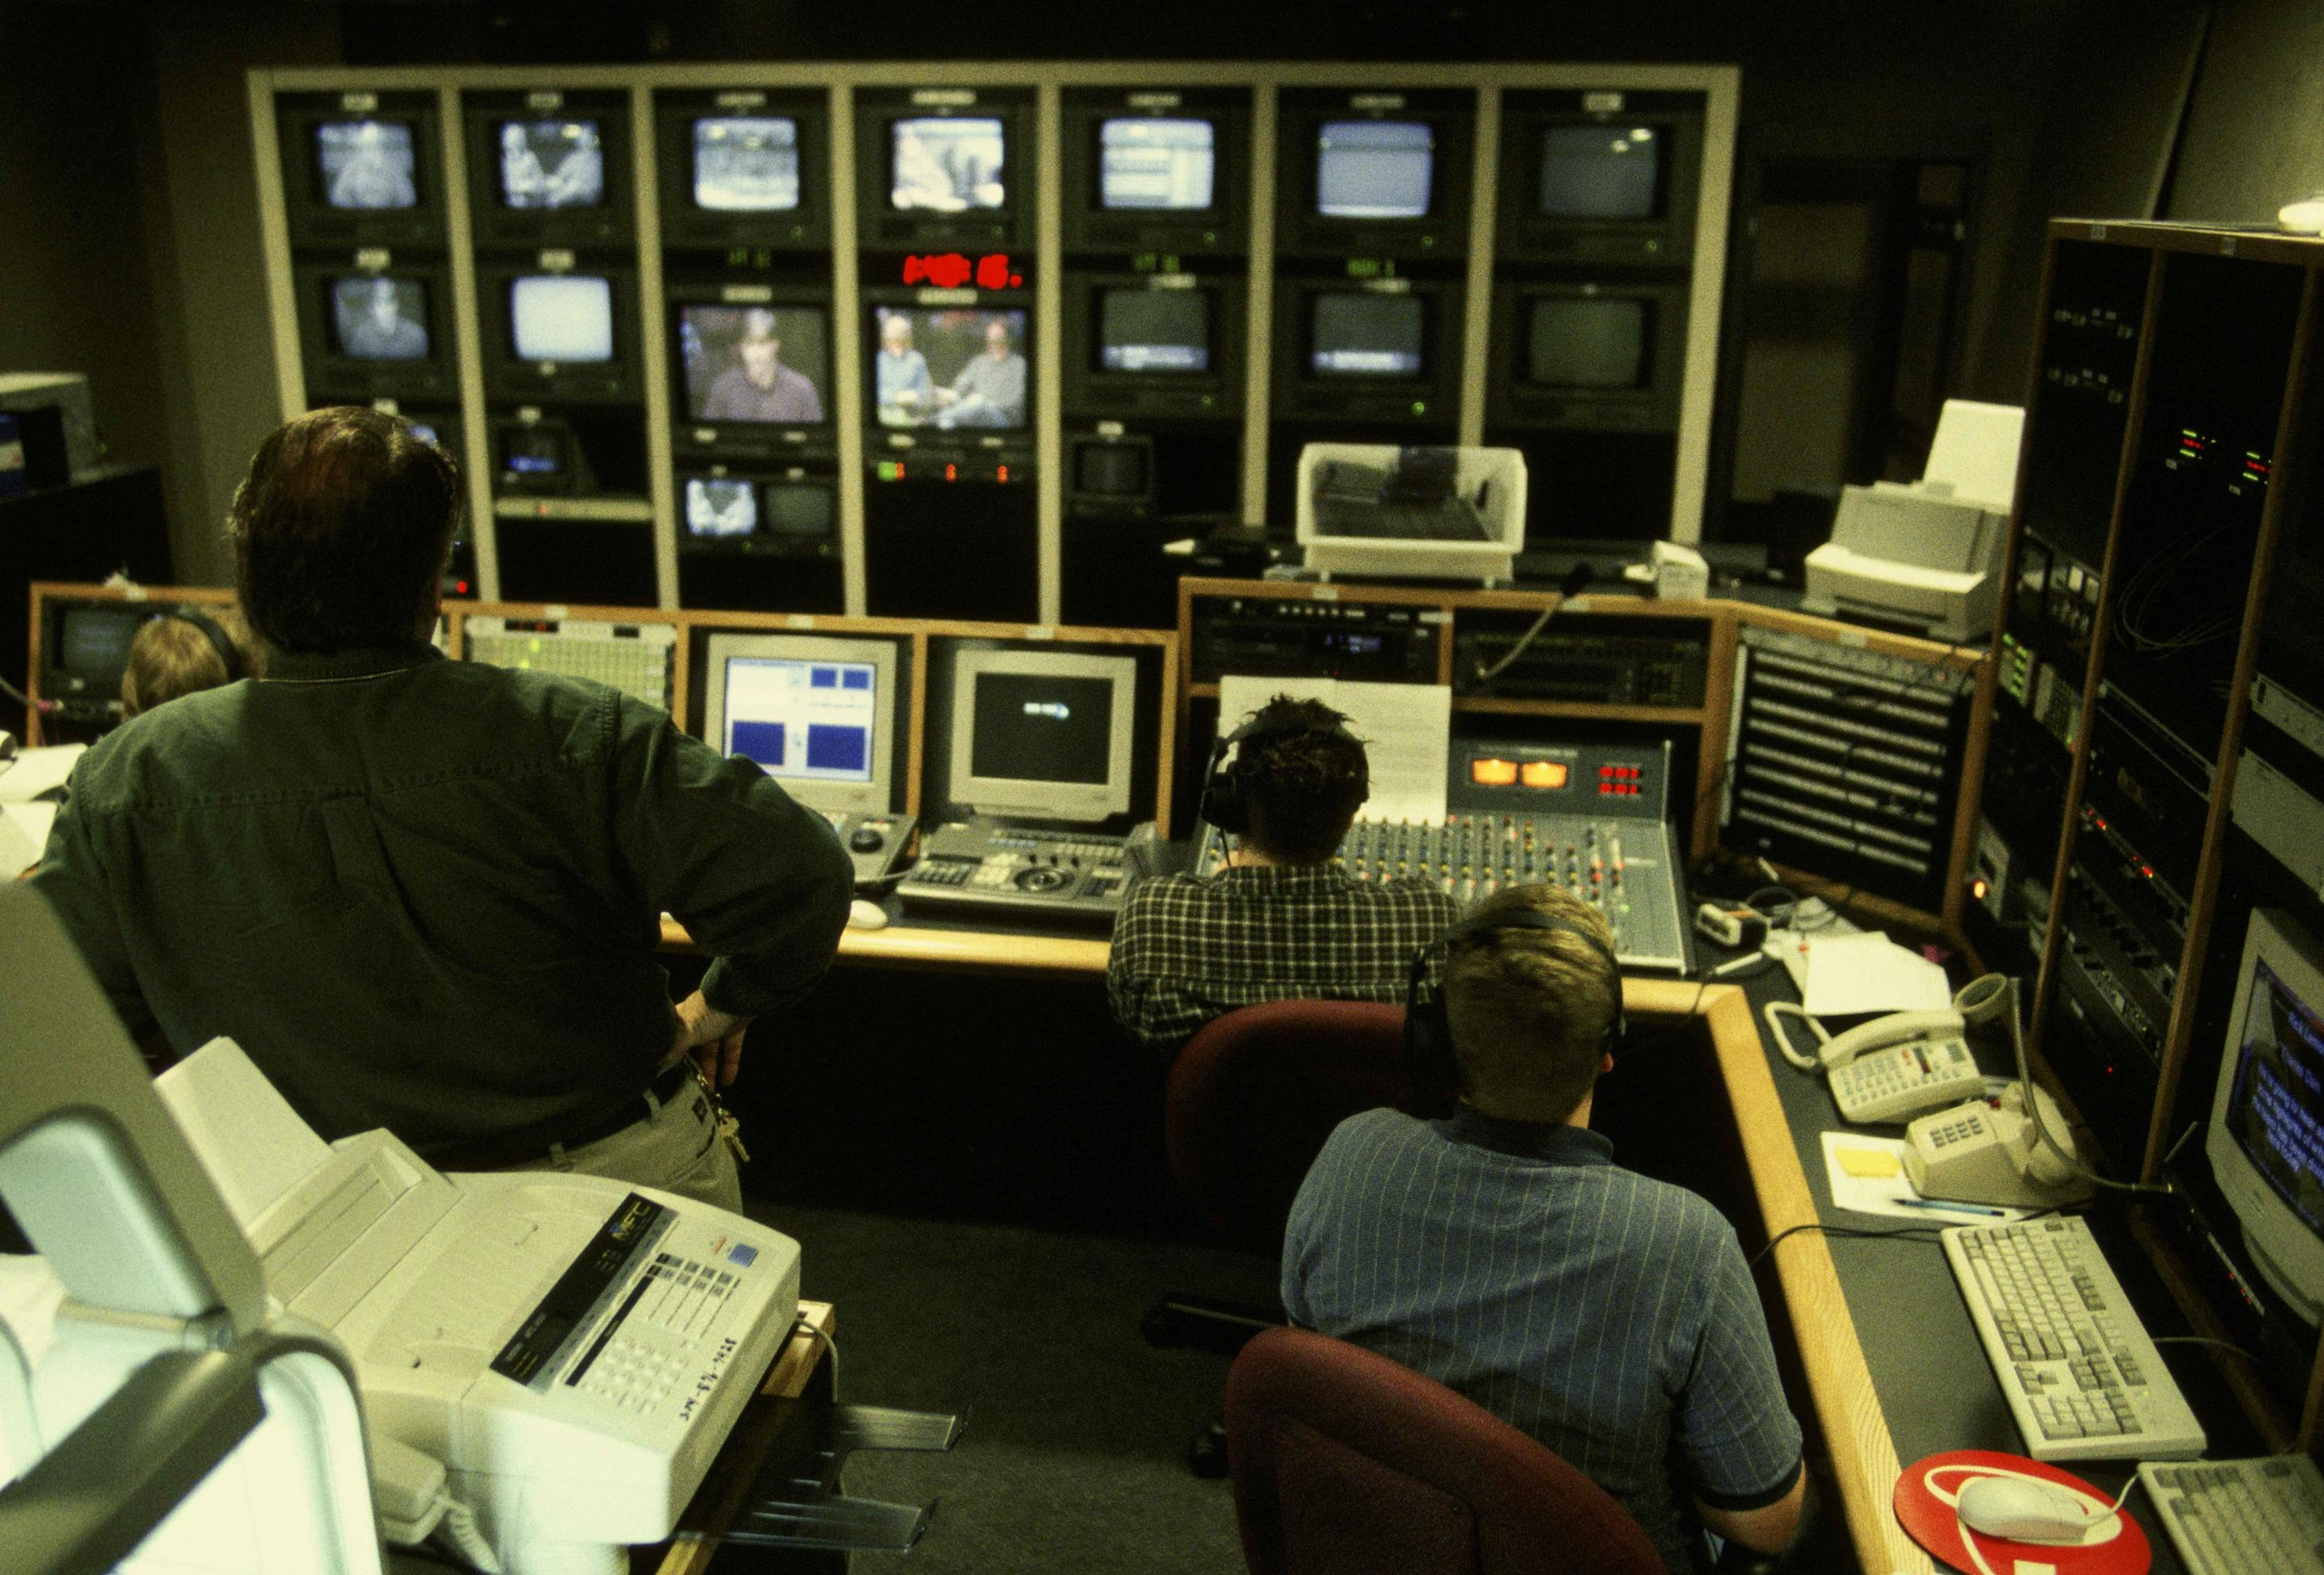 https://upload.wikimedia.org/wikipedia/commons/6/68/Video_production_workers_in_studio_studying_bank_of_monitors_showing_camera_views.jpg